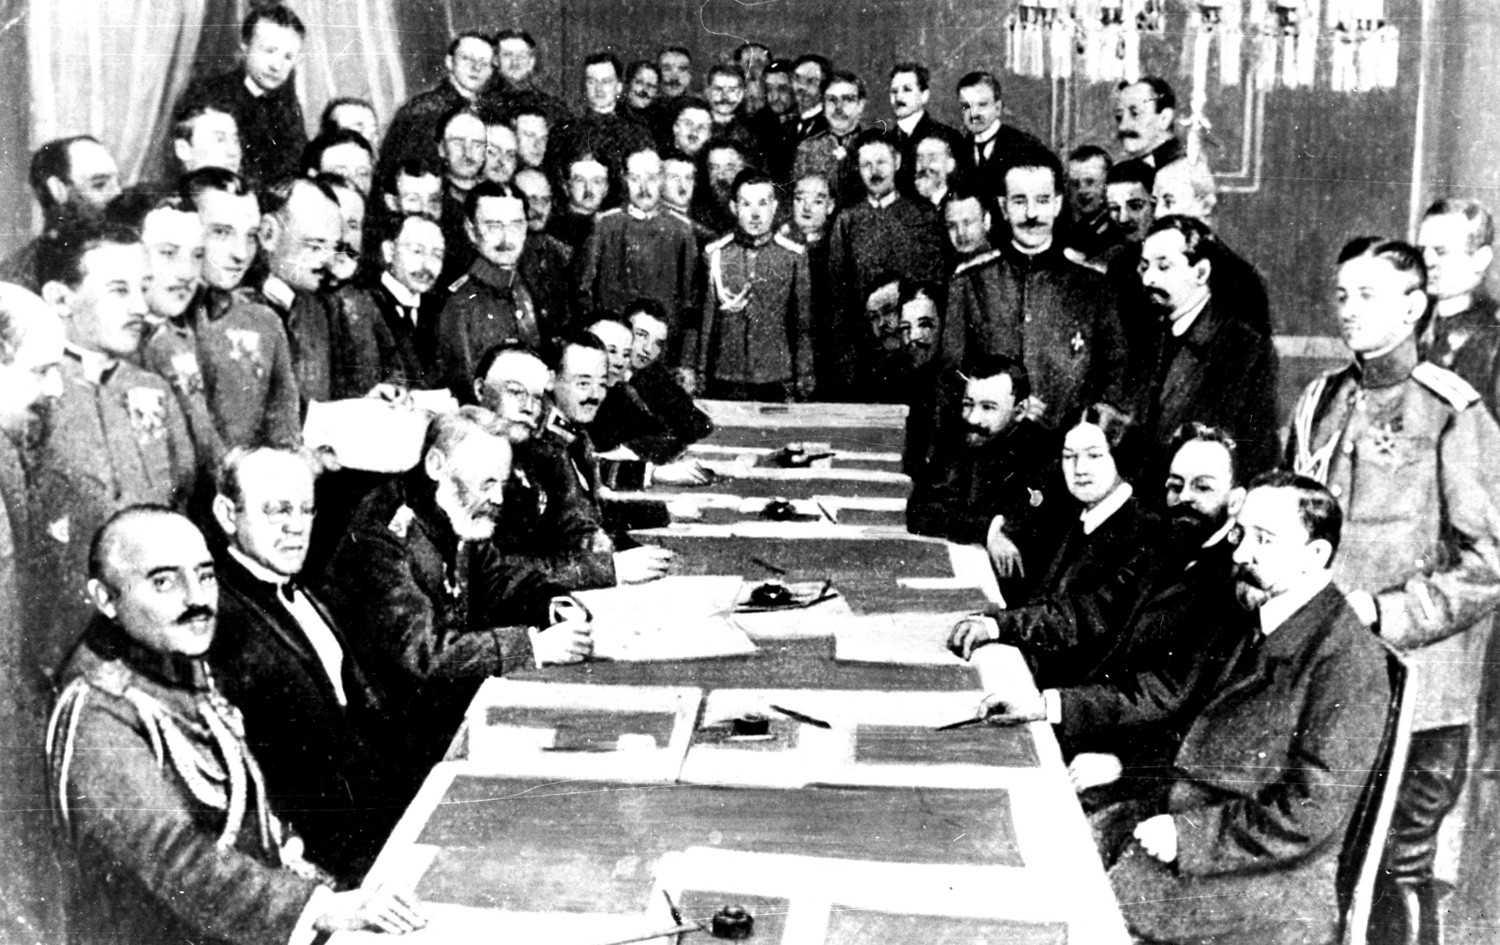 Negotiating the Treaty of Brest-Litovsk in 1918. Germans on the right, Russians (Bolsheviks) on the left.